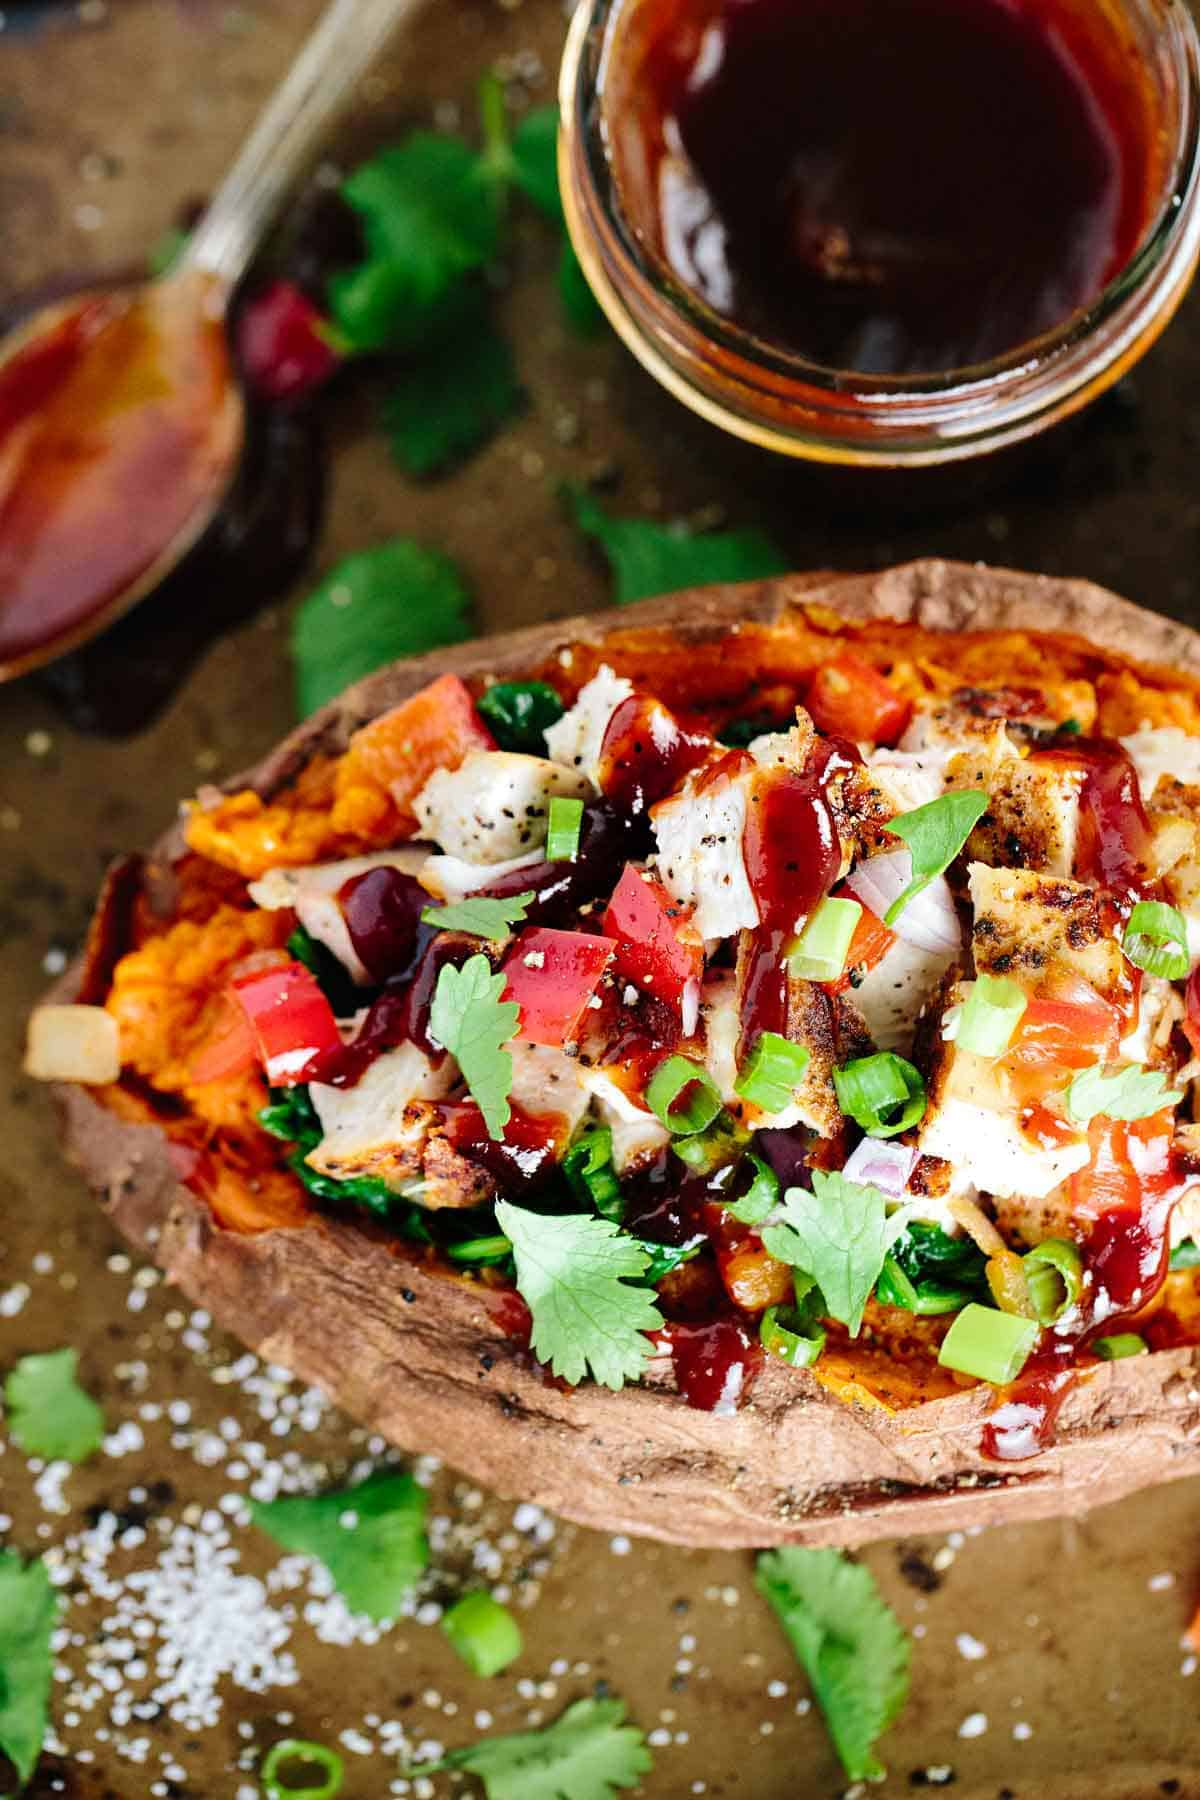 Stuffed Sweet Potato with Barbecue Chicken - Loaded with fresh kale, spinach, peppers and lean chicken for a simple and satisfying meal! | jessicagavin.com